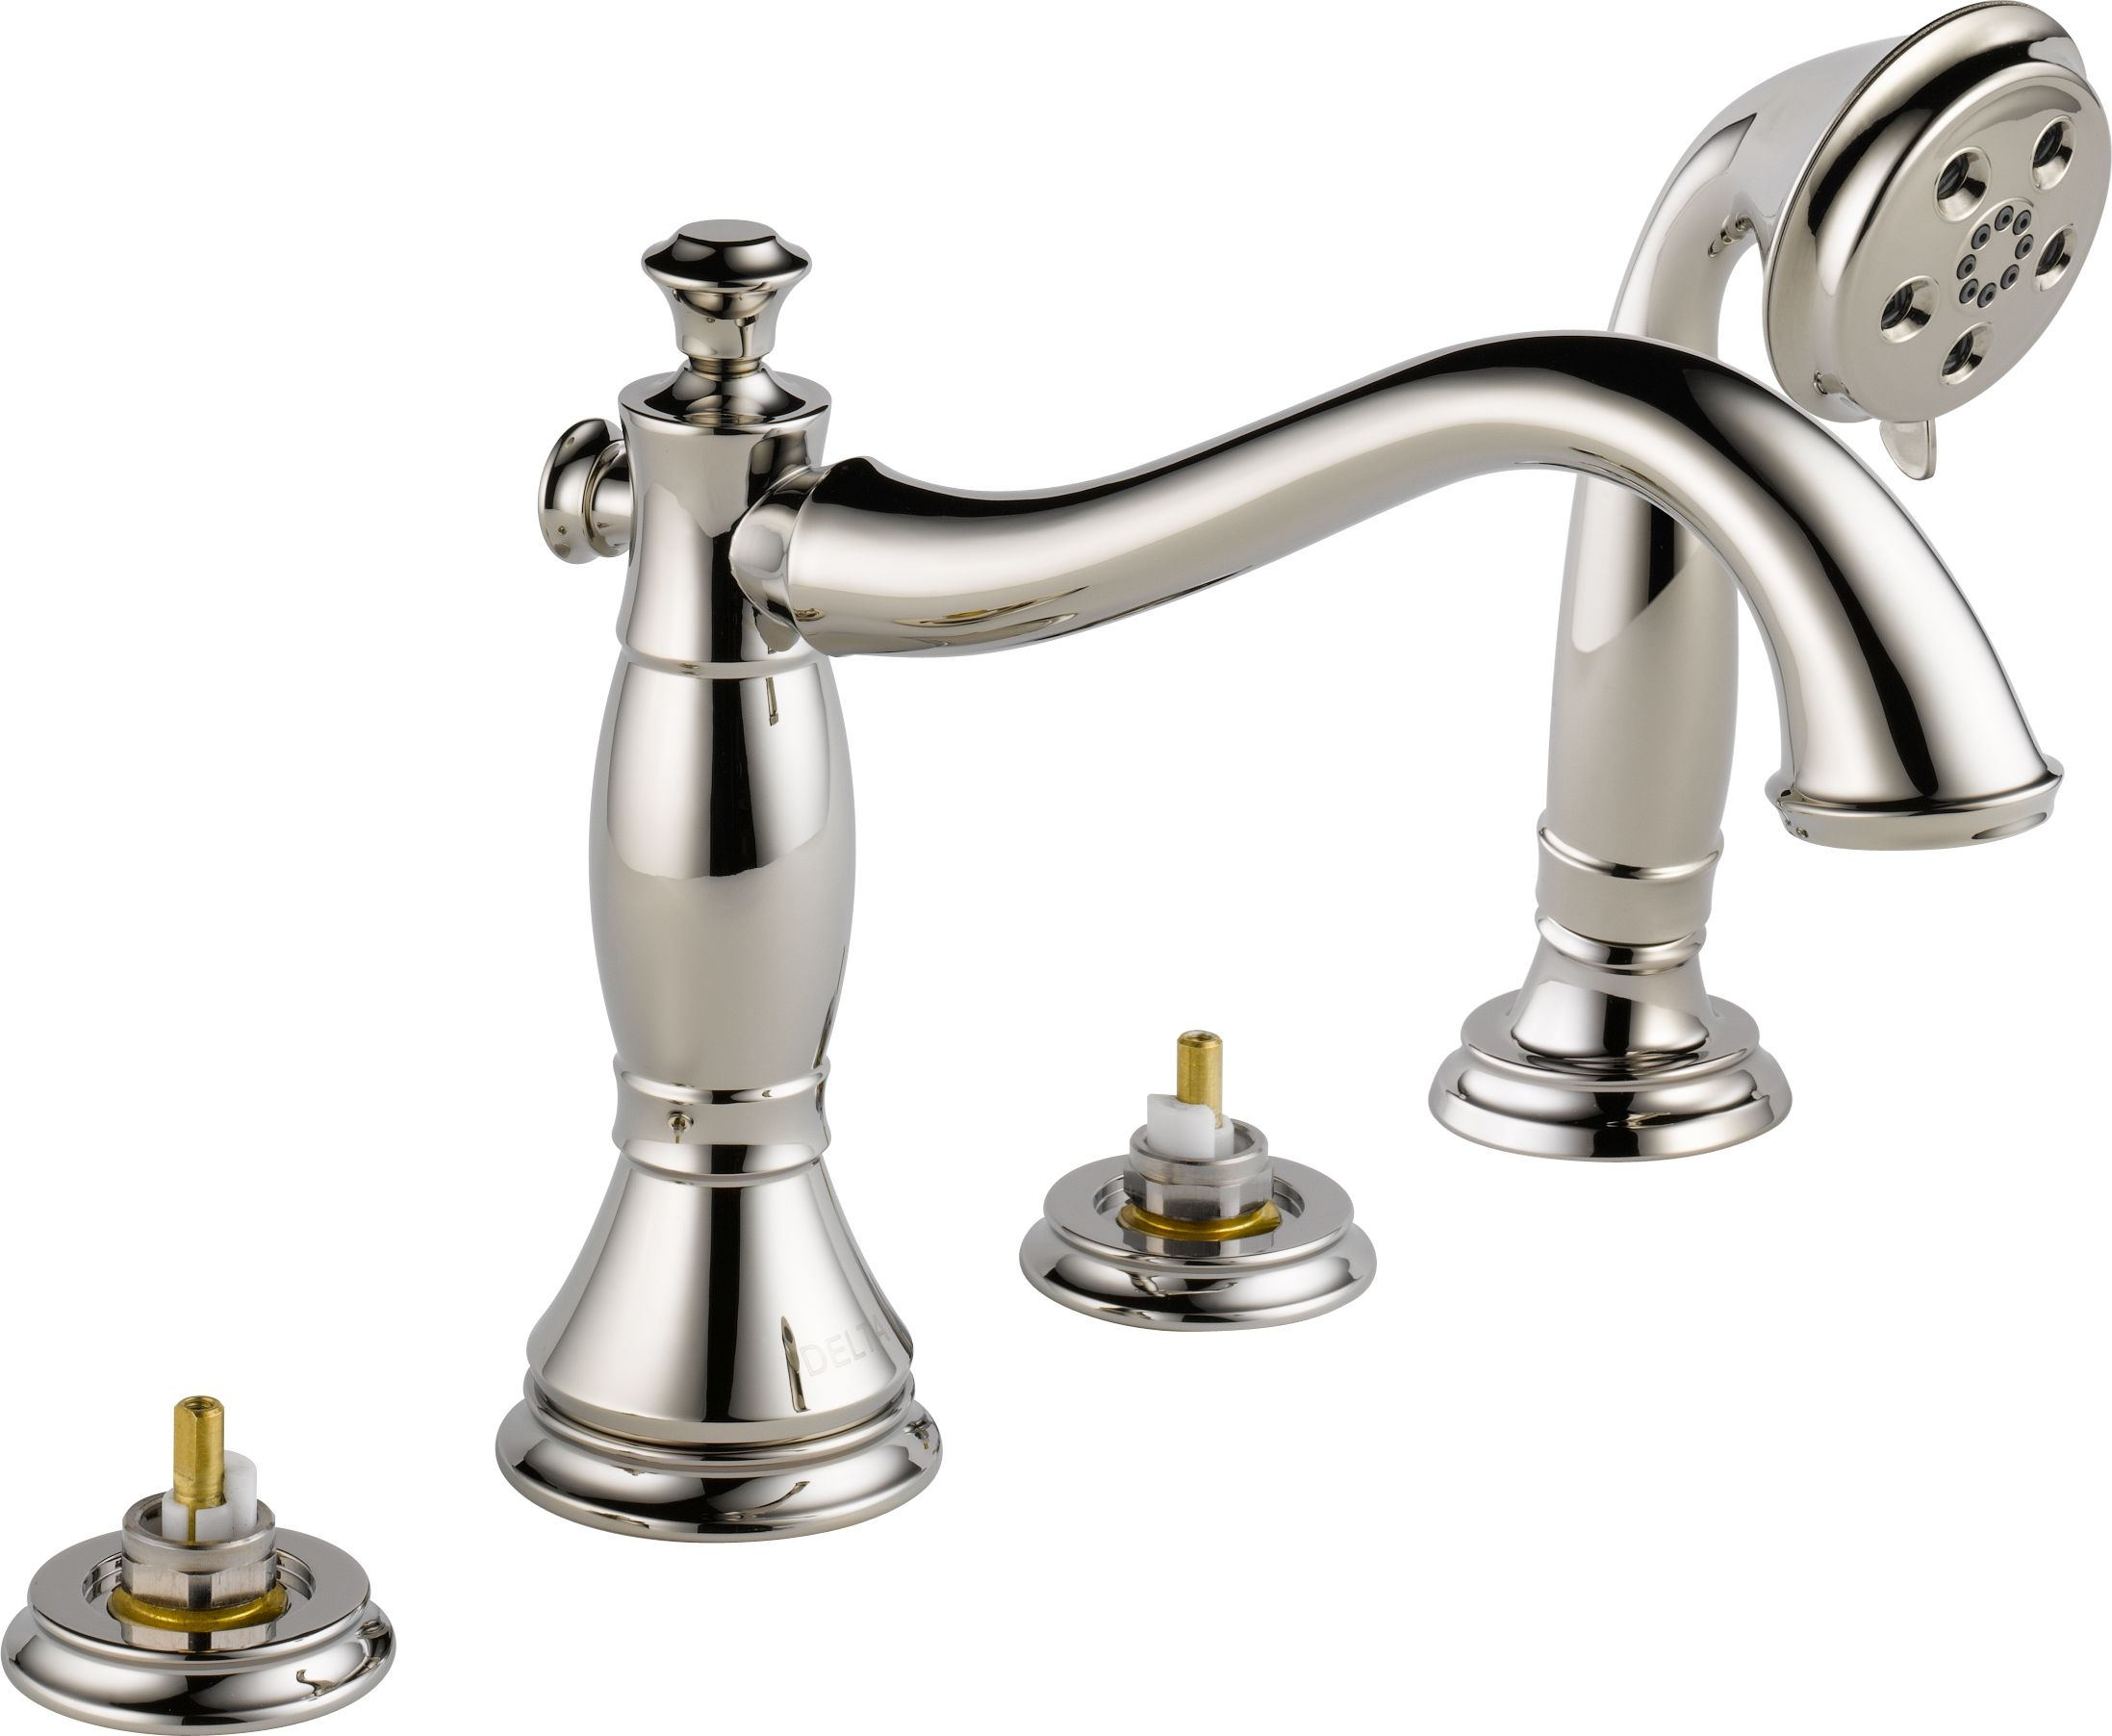 Delta T4797 Sslhp Brilliance Stainless Cassidy Roman Tub Faucet Trim At Our Kitchen Faucets Bathroom And Shower With Hand Handles Rough In Valve Sold Separately